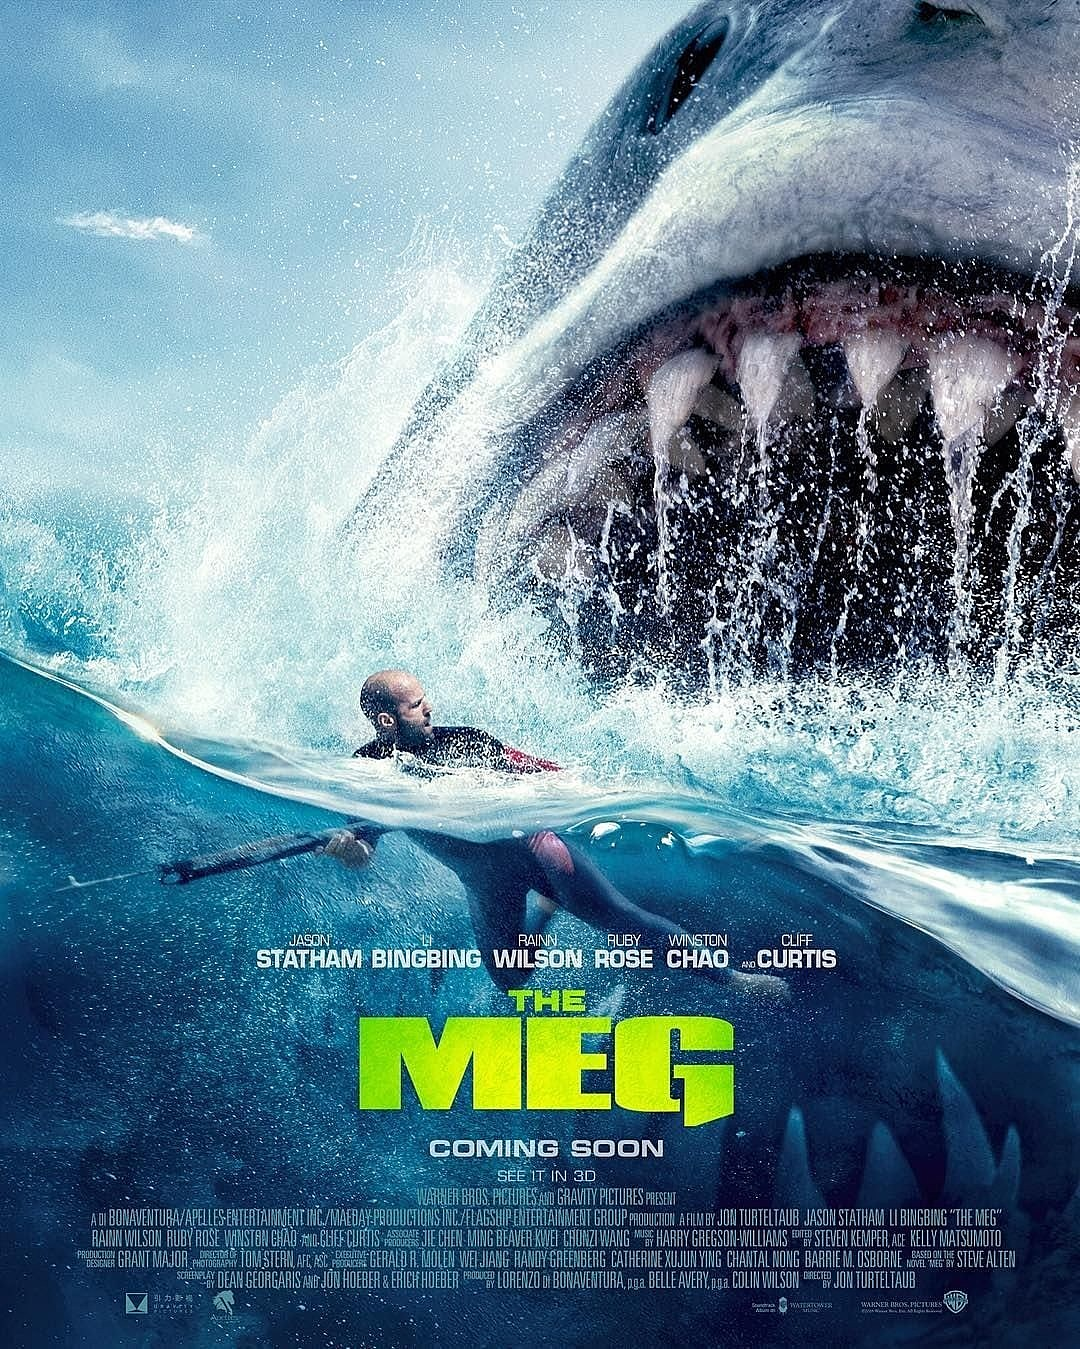 The Meg: one of the few films that Moviepass users can see today with the service.